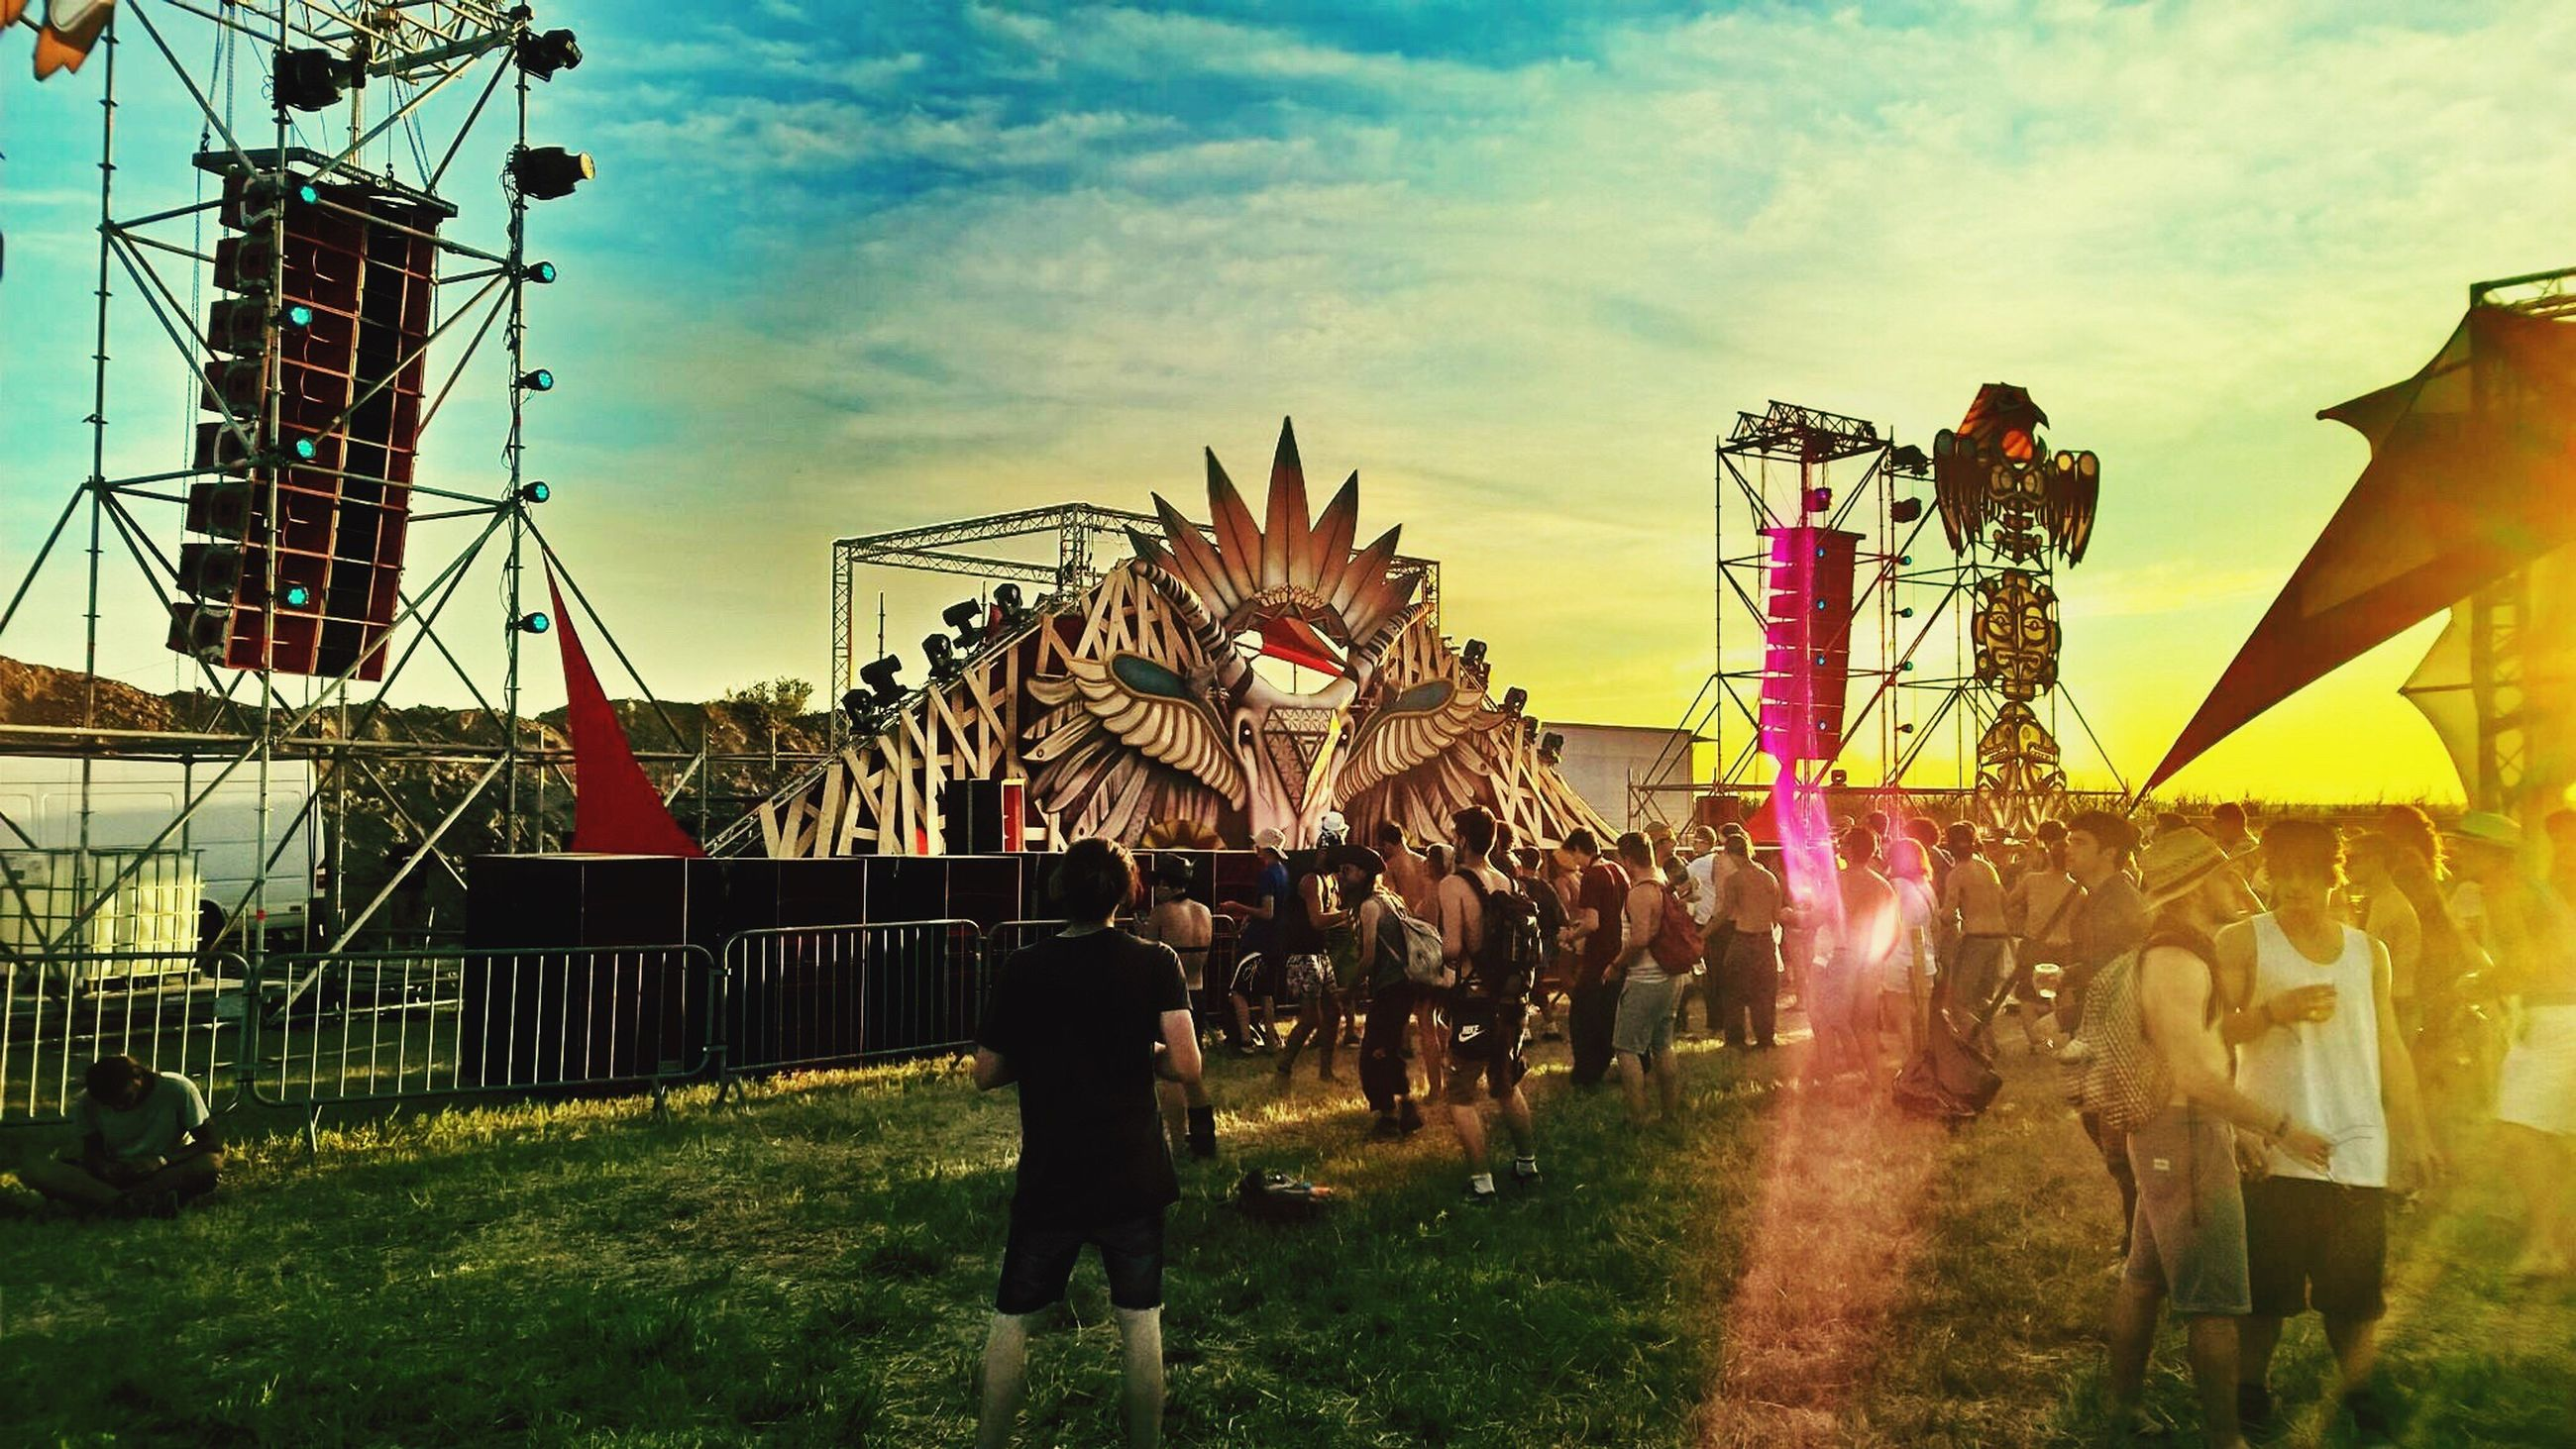 sky, full length, amusement park, cloud - sky, person, outdoors, day, cloud, traveling carnival, multi colored